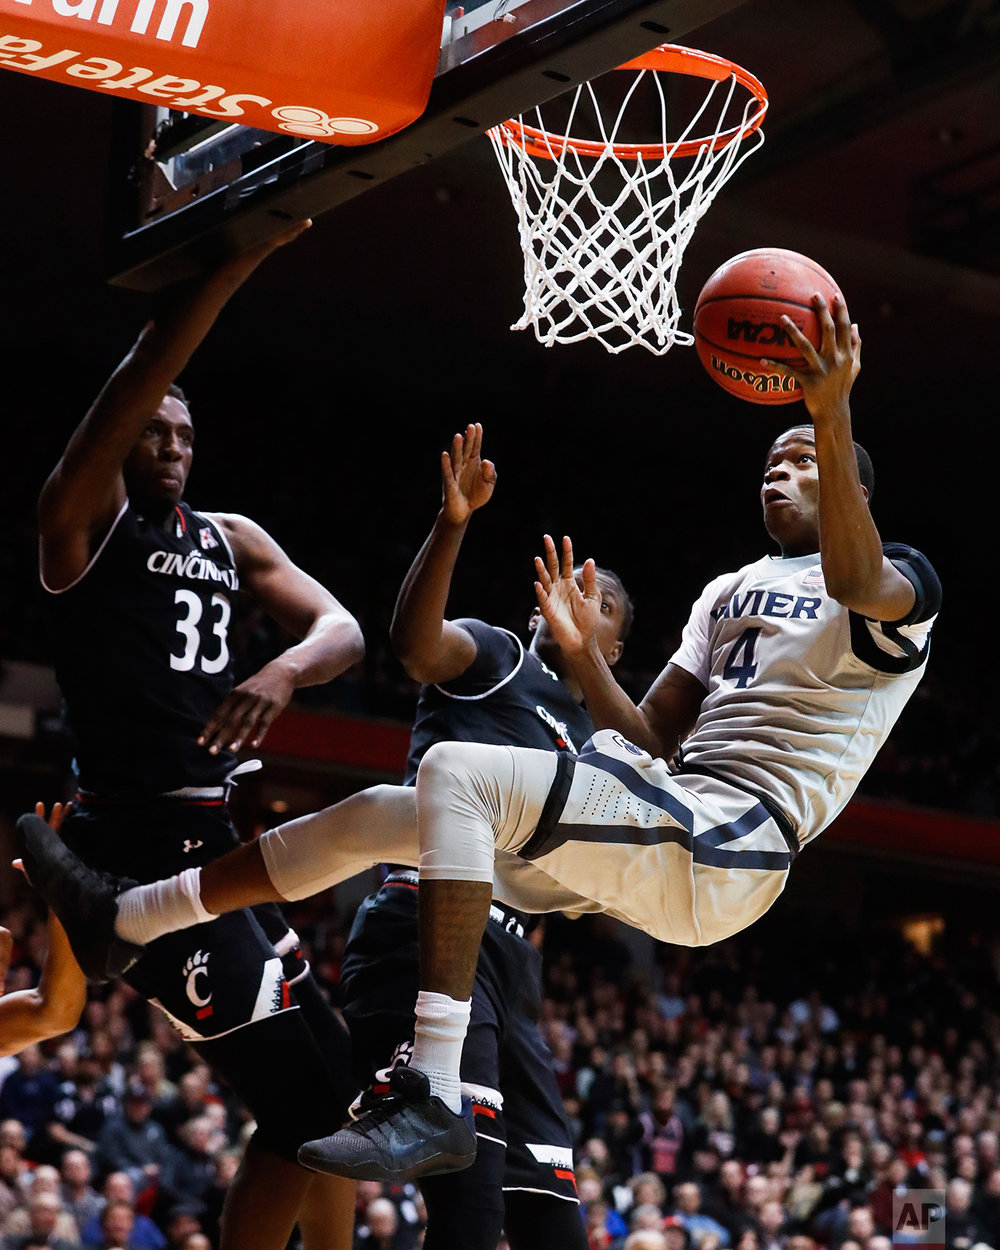 Xavier's Edmond Sumner (4) shoots against Cincinnati's Nysier Brooks (33) during the second half of an NCAA college basketball game, Thursday, Jan. 26, 2017, in Cincinnati. (AP Photo/John Minchillo)